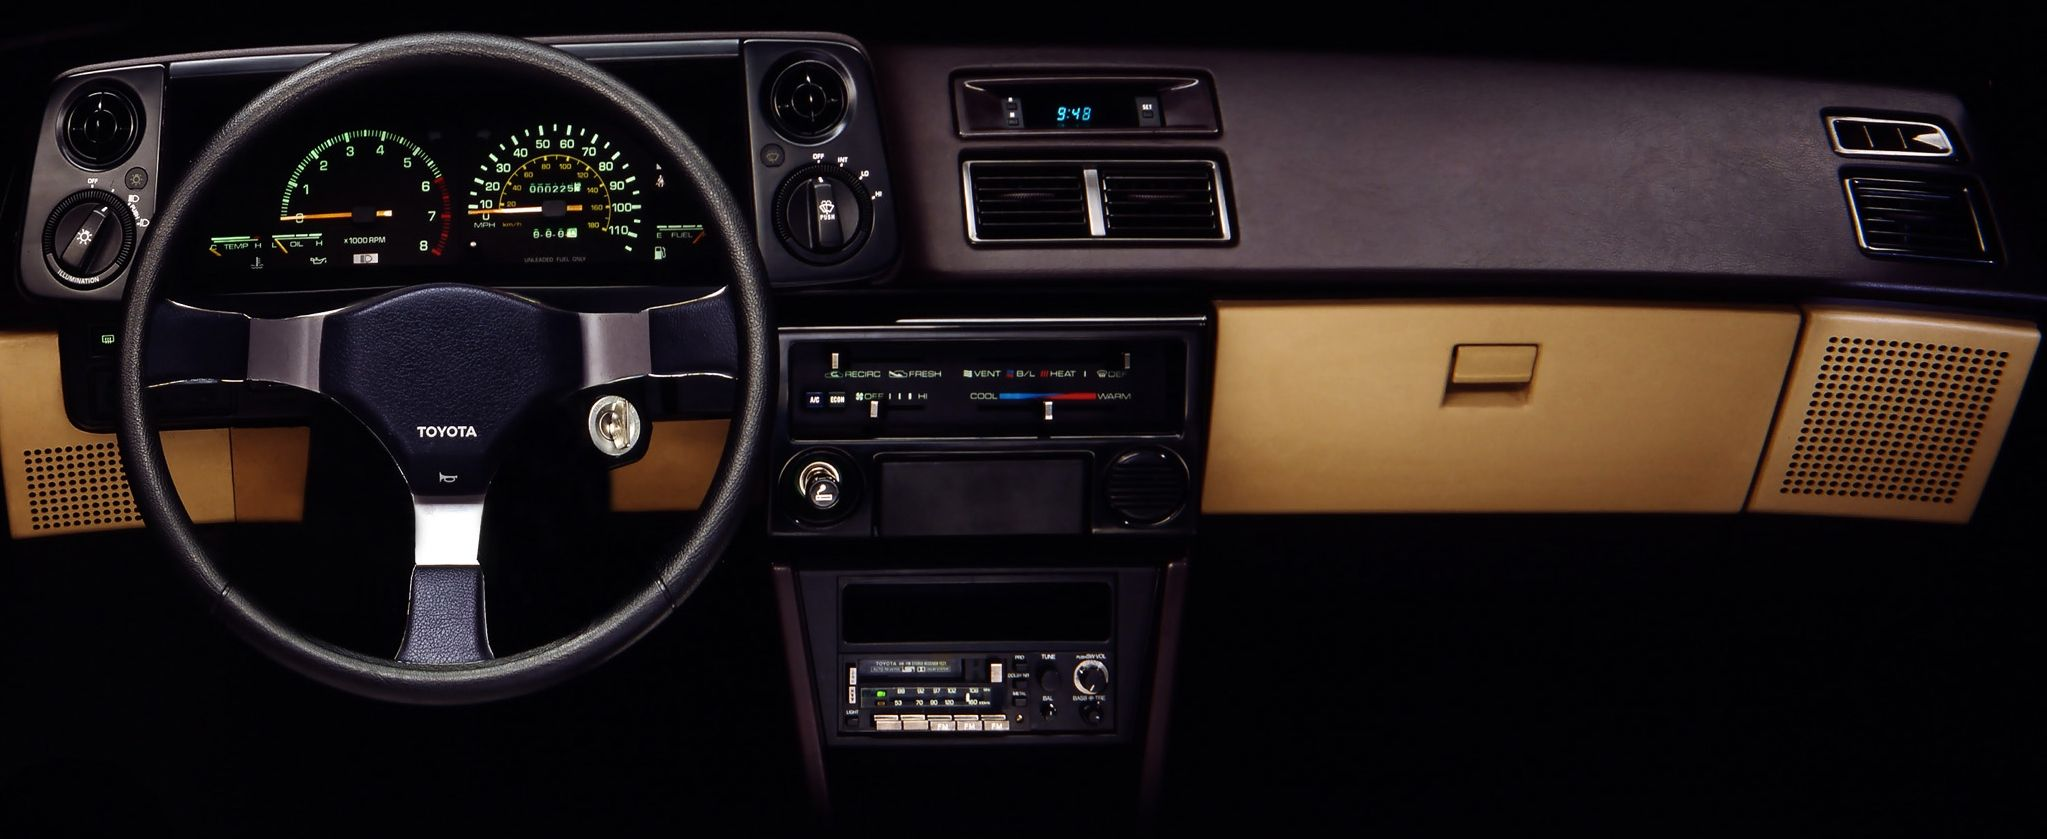 TOYOTA Corolla GT Coupe TwinCam 16 V (AE86) dashboard